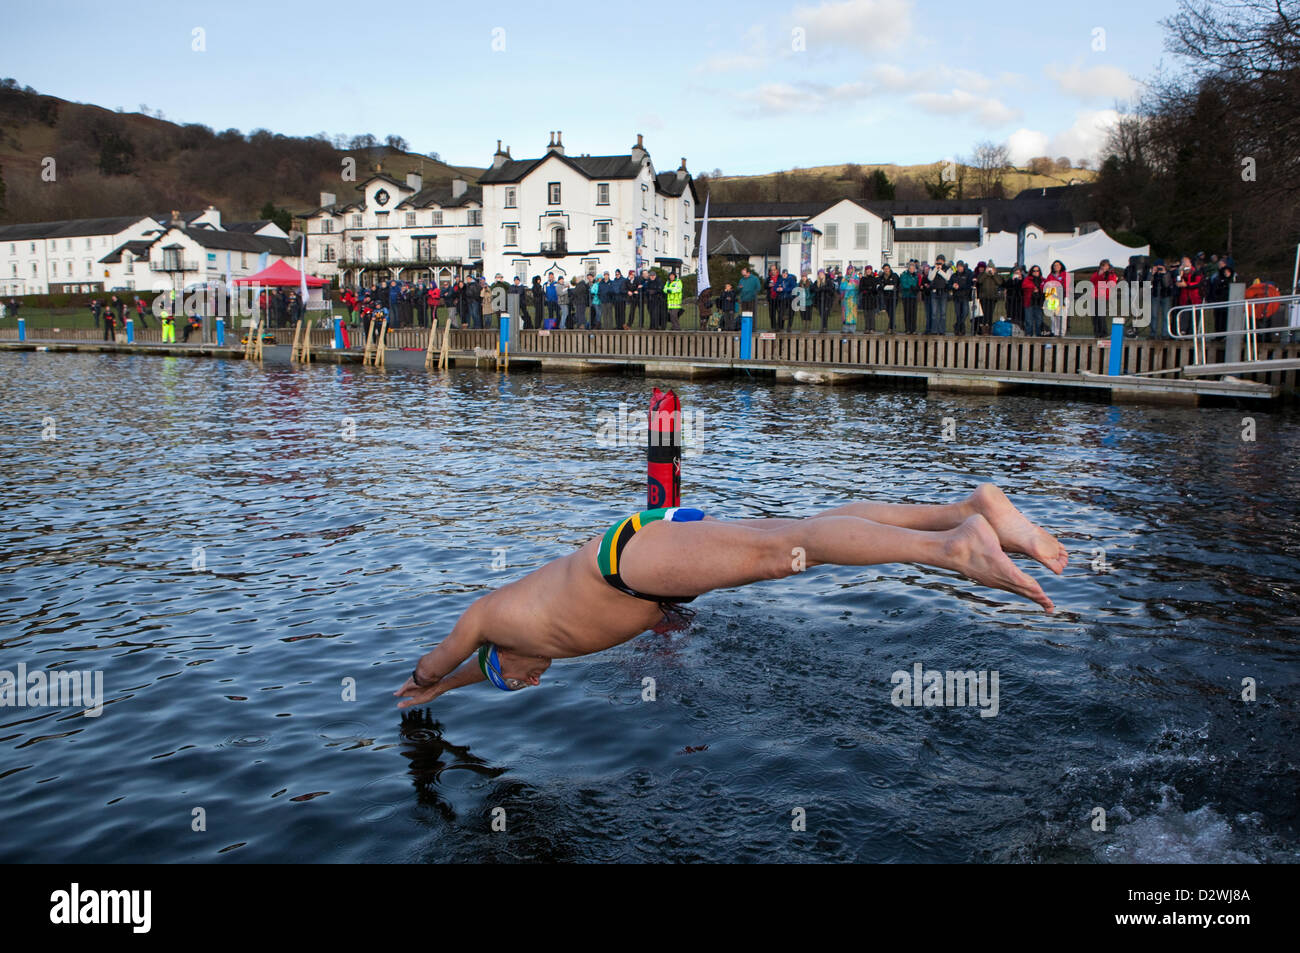 Lake Windemere, Cumbria, UK. 2nd February 2013. Chillswim event in Lake Windermere, Lake District. People compete Stock Photo